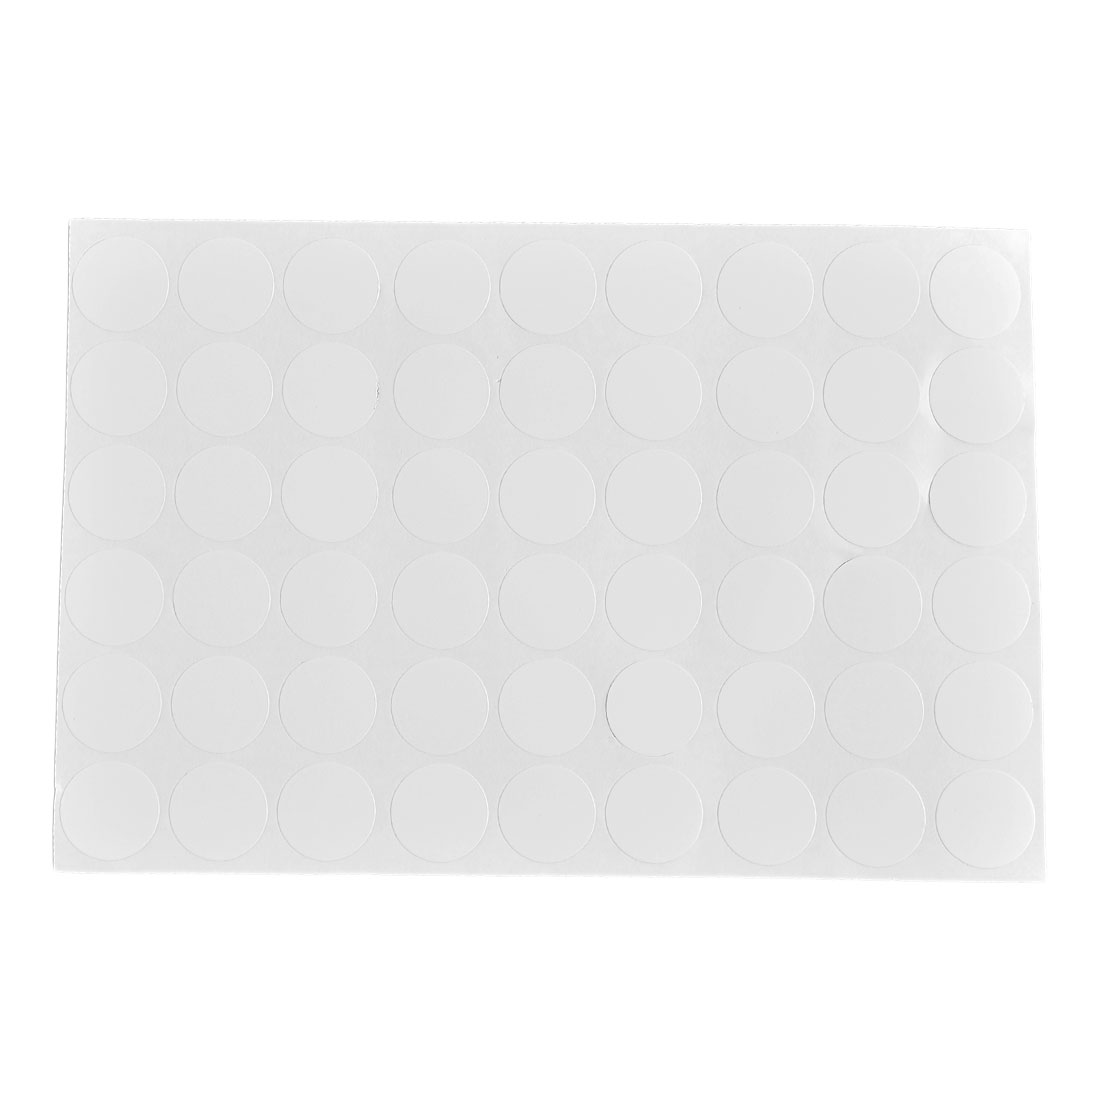 Furniture Self-adhesive Screw Hole Stickers Covers on One Sheet White 54 in 1